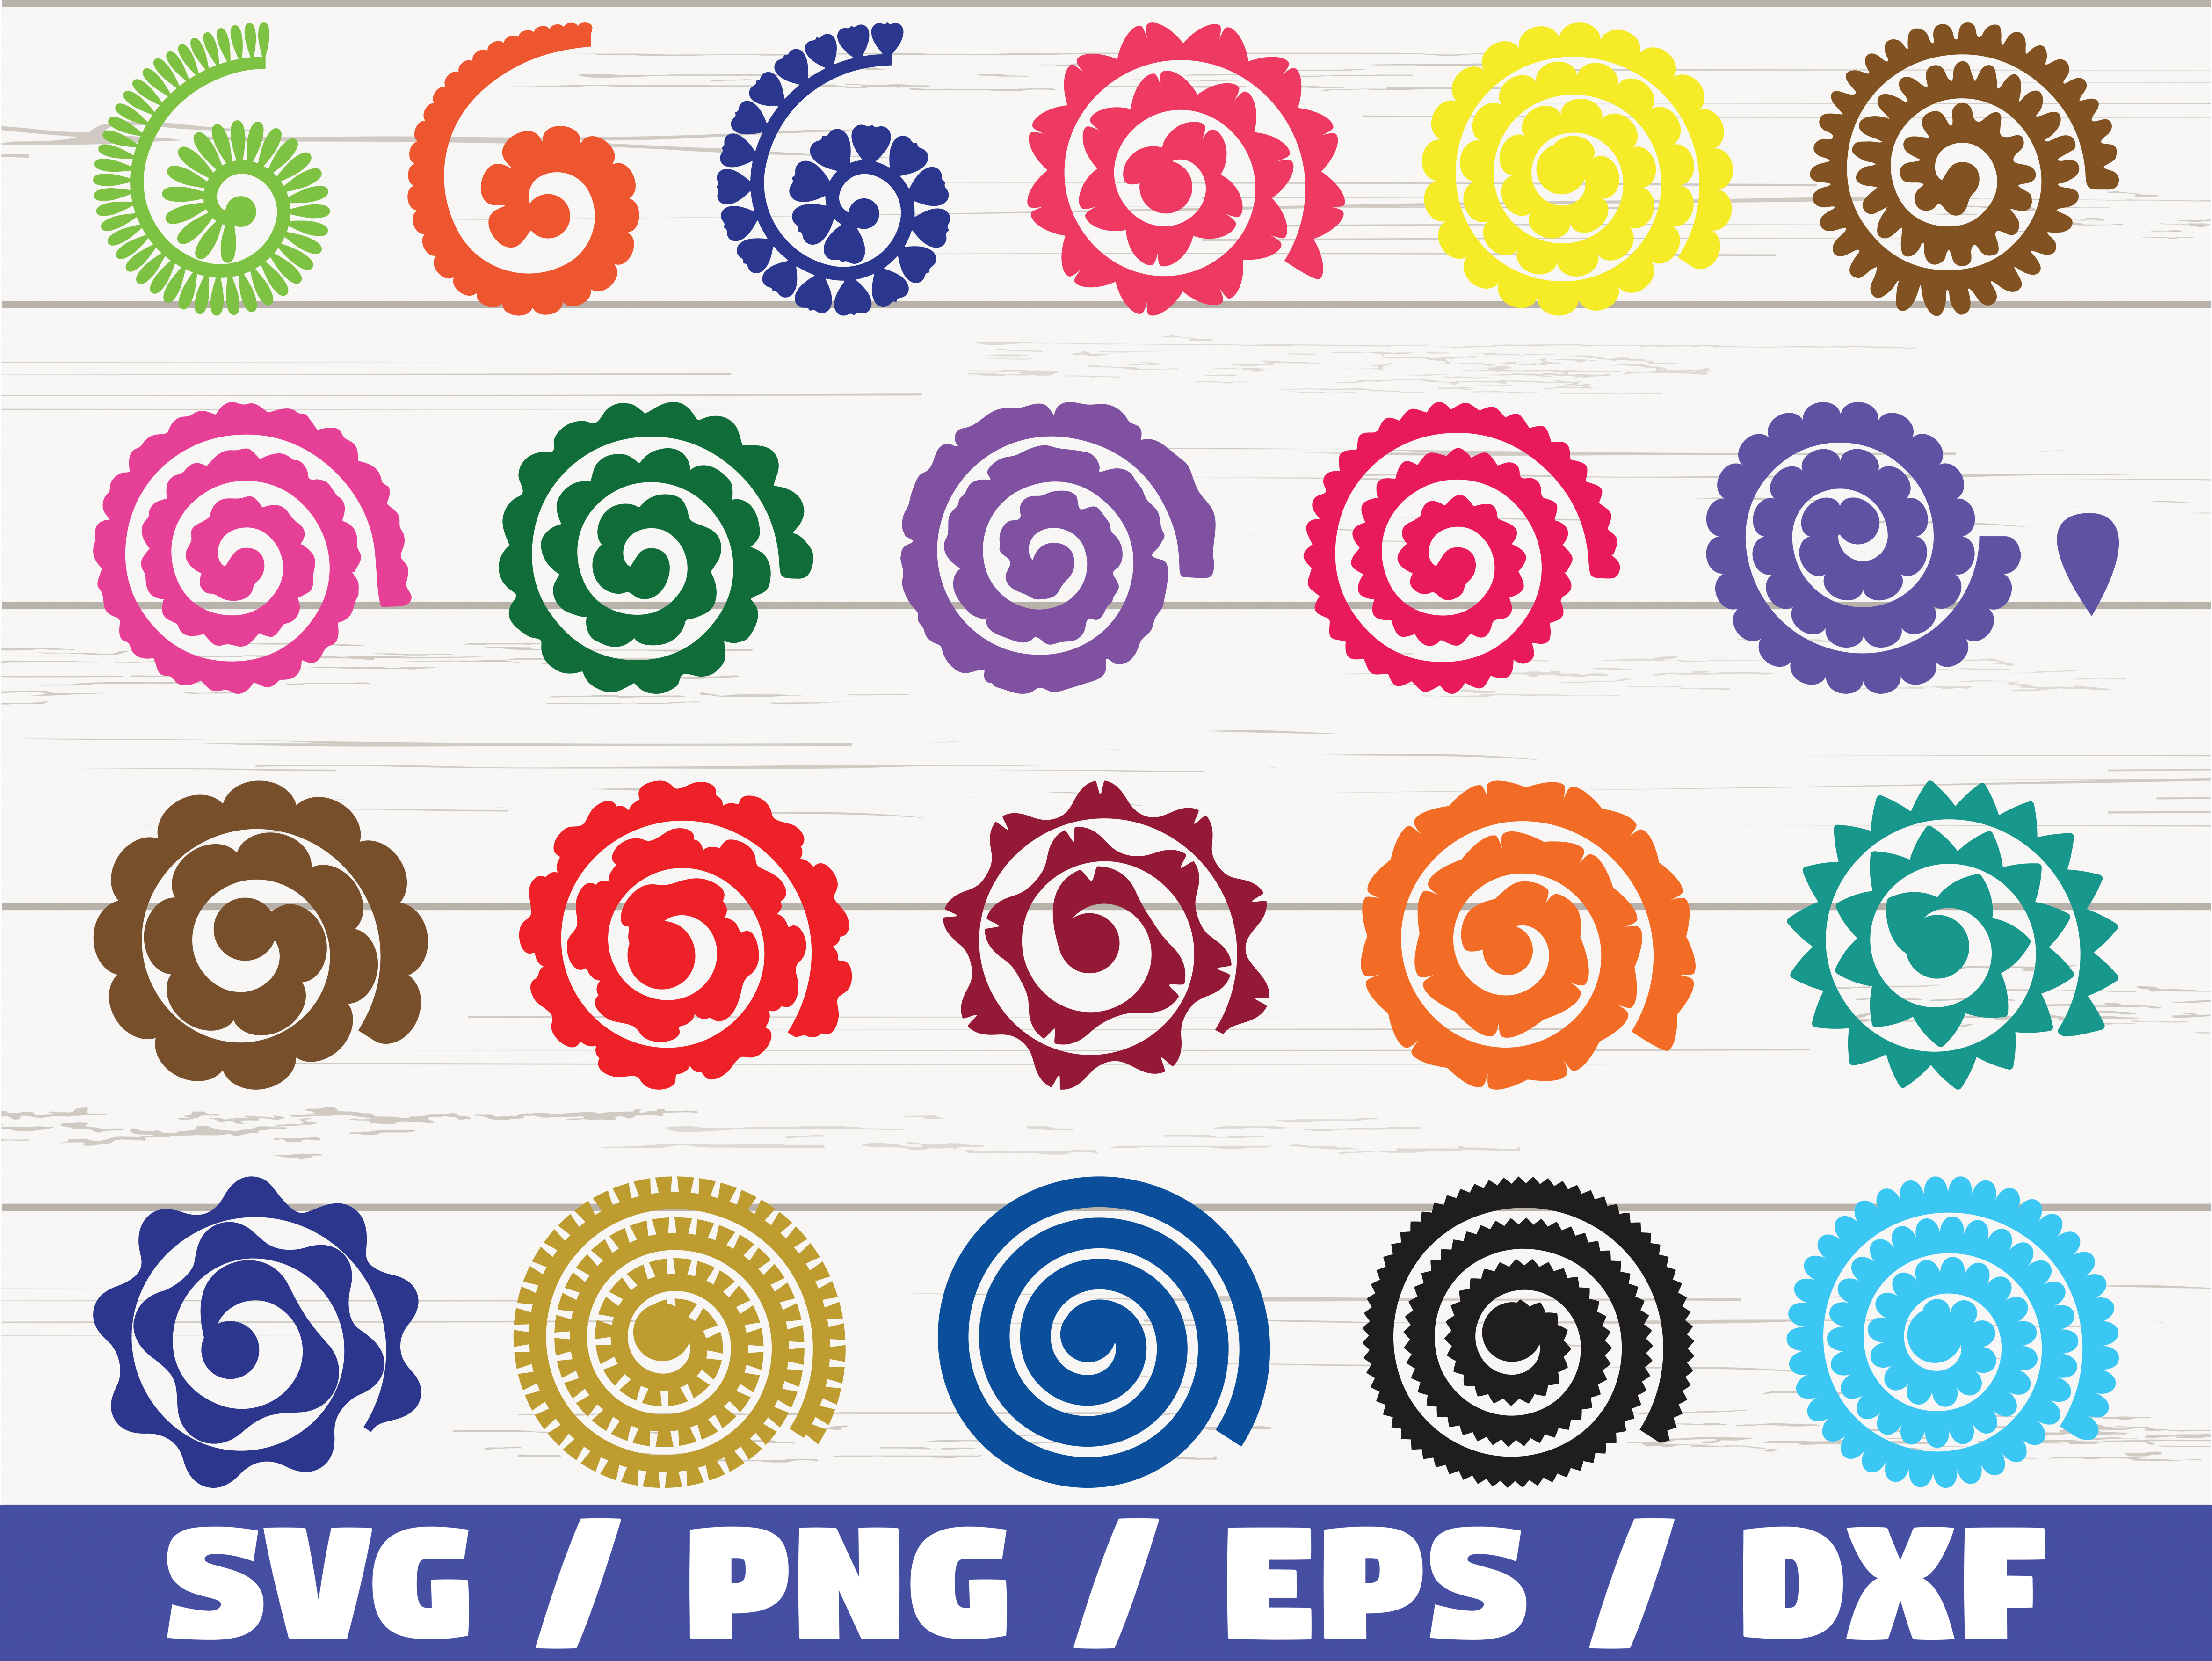 Rolled Paper Flowers SVG / Cut Files SVG File